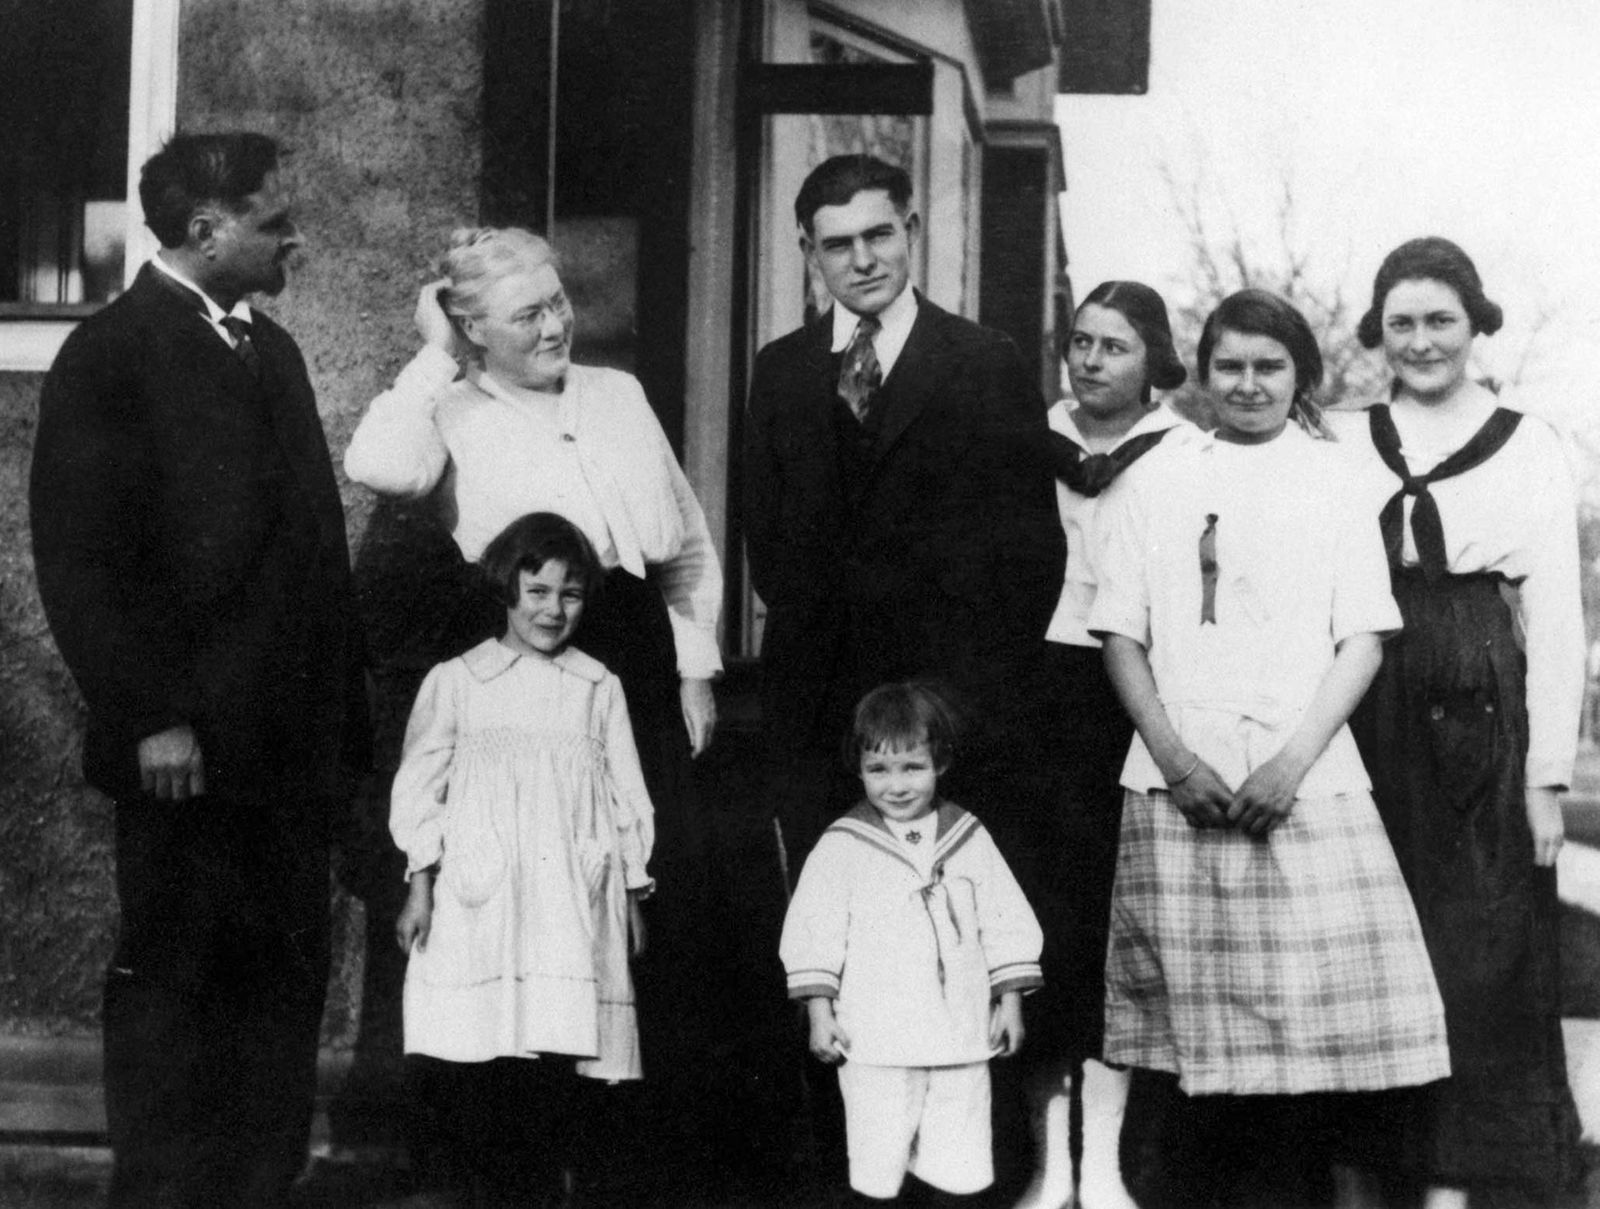 - FILE PHOTO 1918 - Ernest Hemingway (C) poses with his family in 1918 at his boyhood home at 339 N..